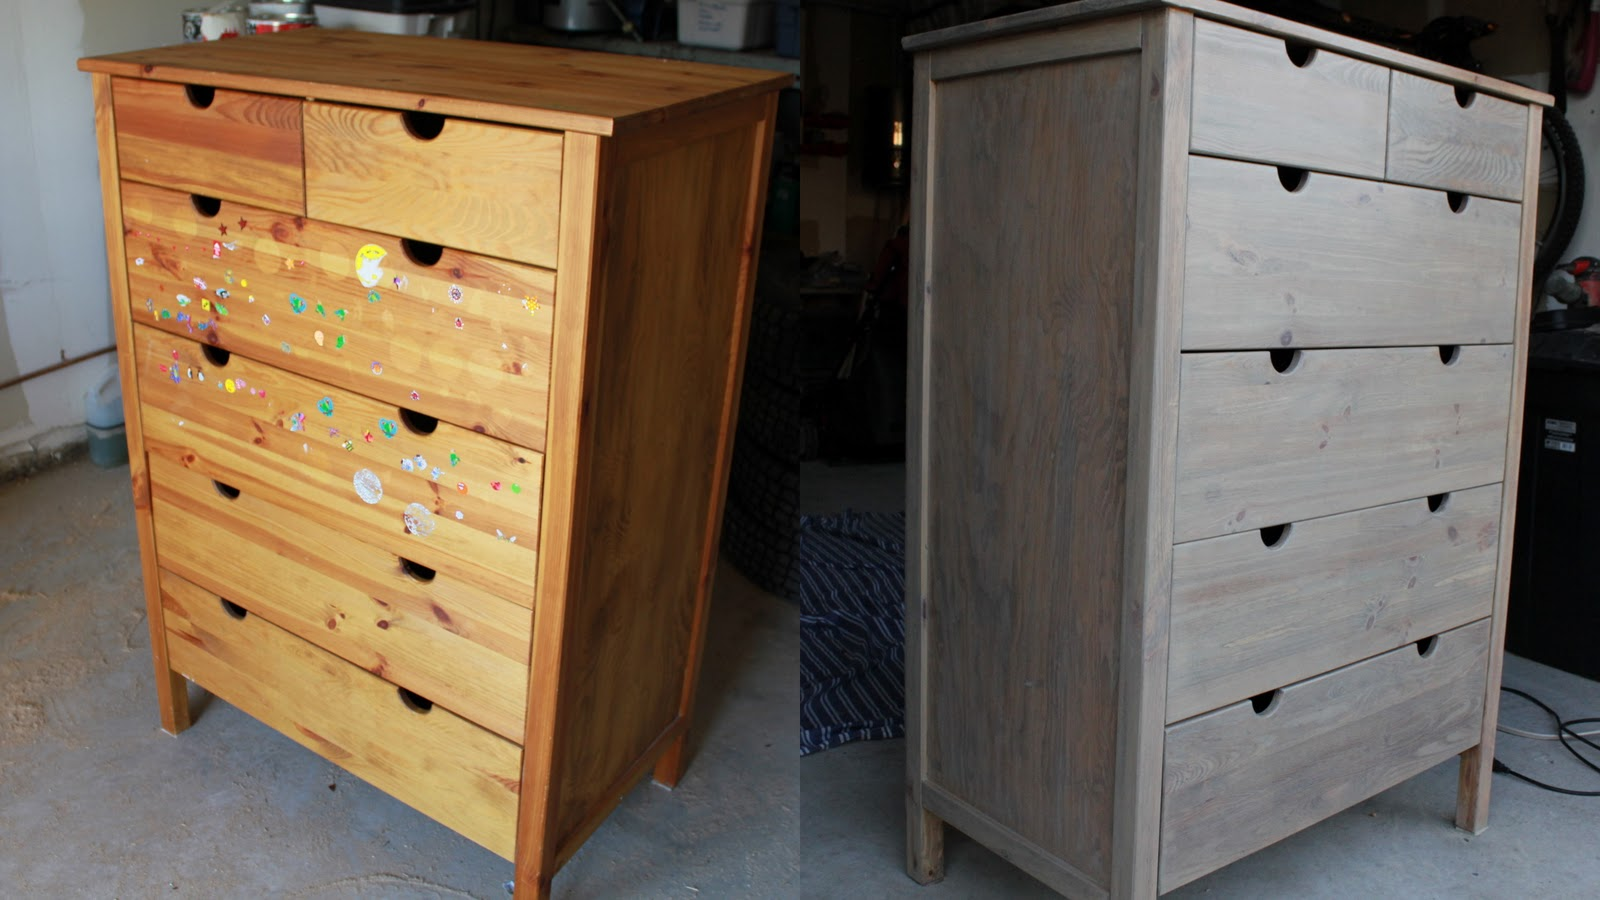 Turtles And Tails Wash Amp Wax Dresser Refinishing Part Two